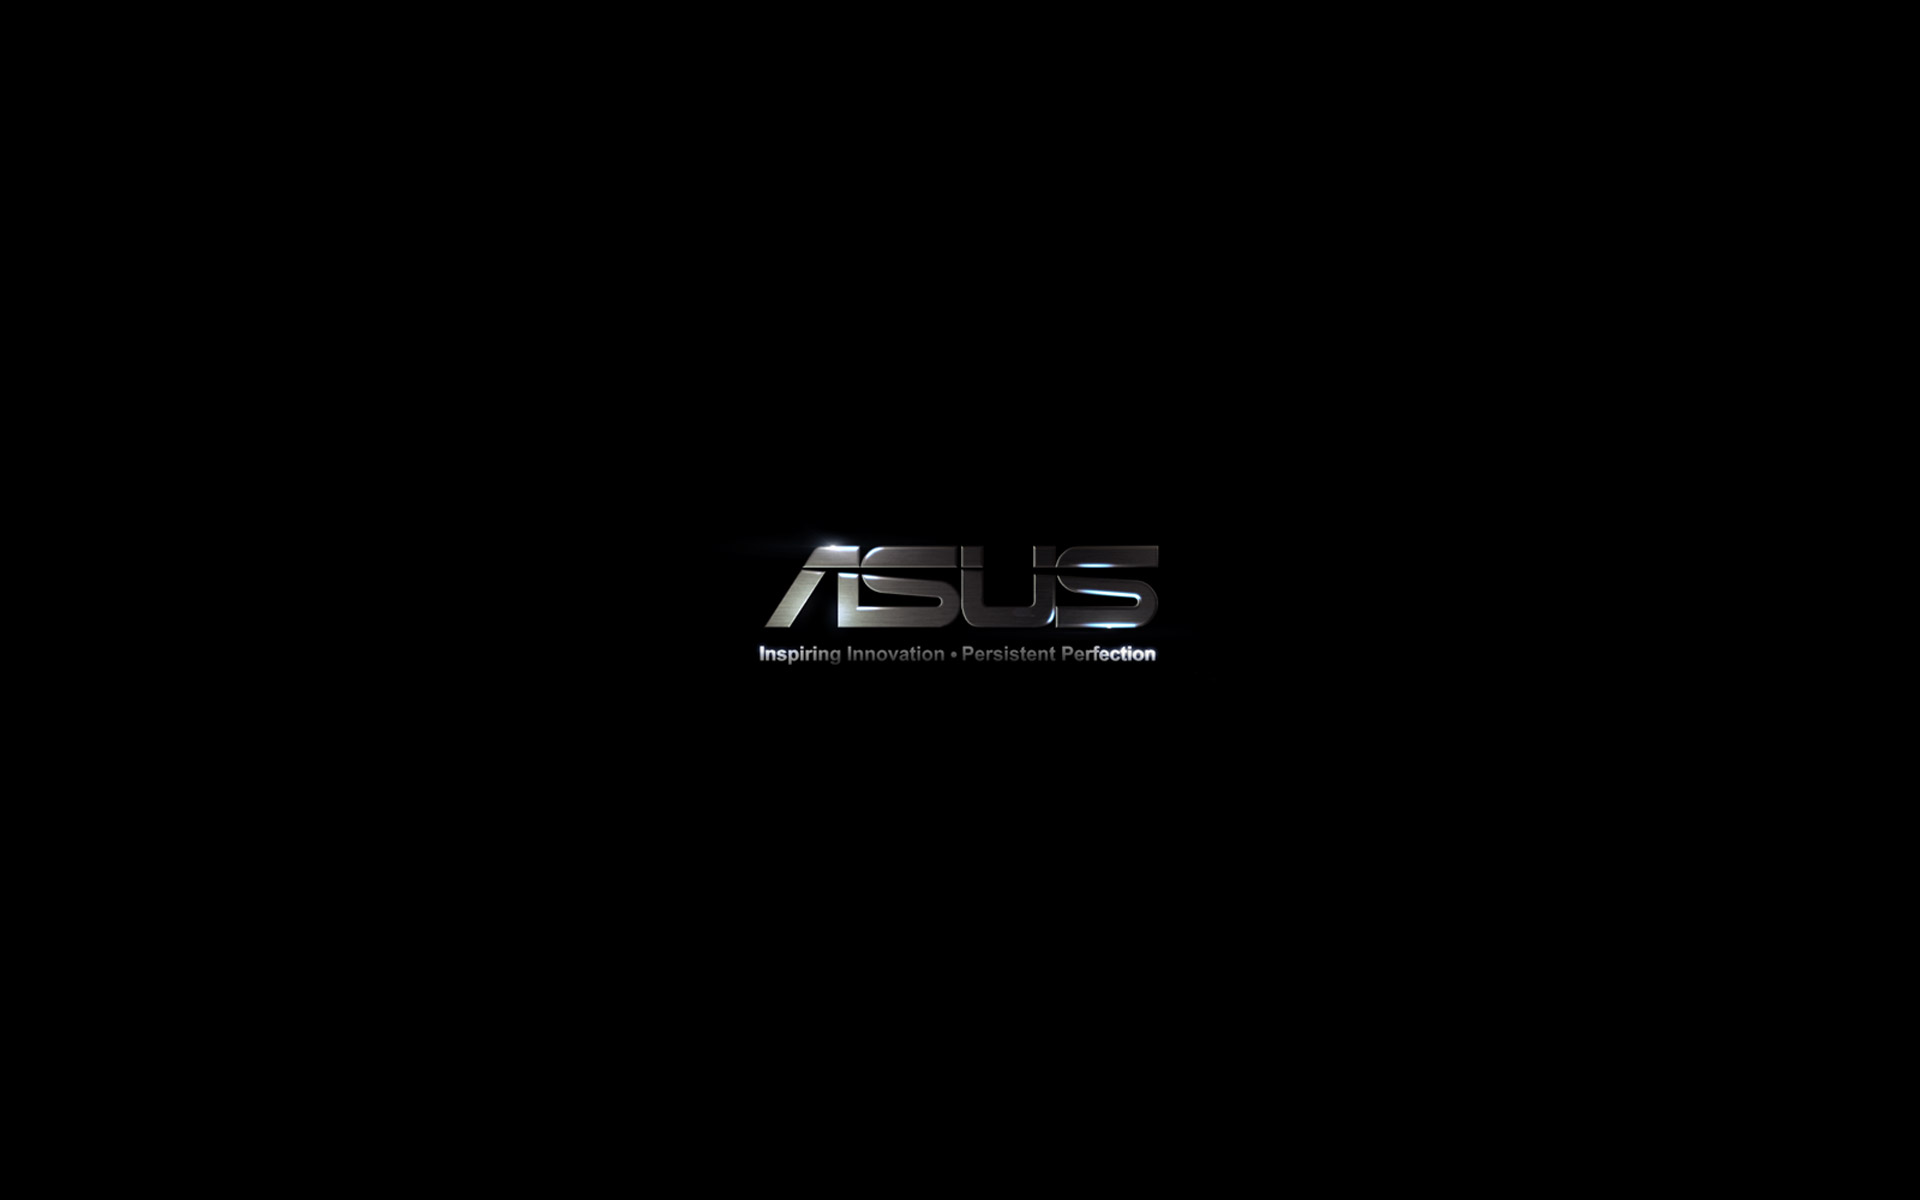 Asus Wallpaper Full HD Pictures 1920x1200